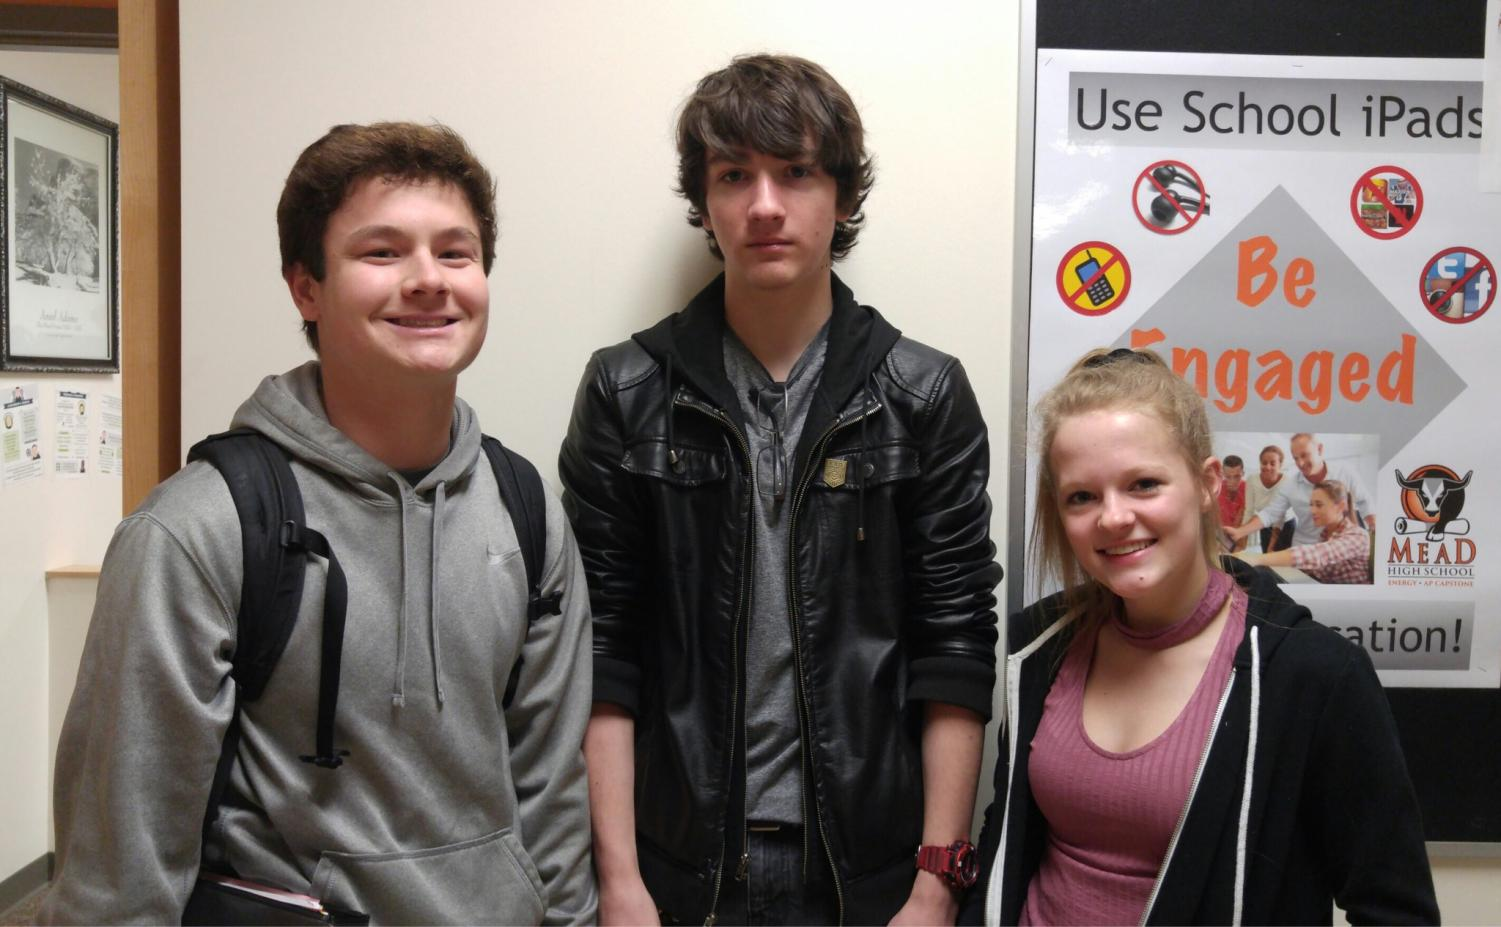 from left to right: Taylor Kamigaki, Beau Klein, and Sydney Bell